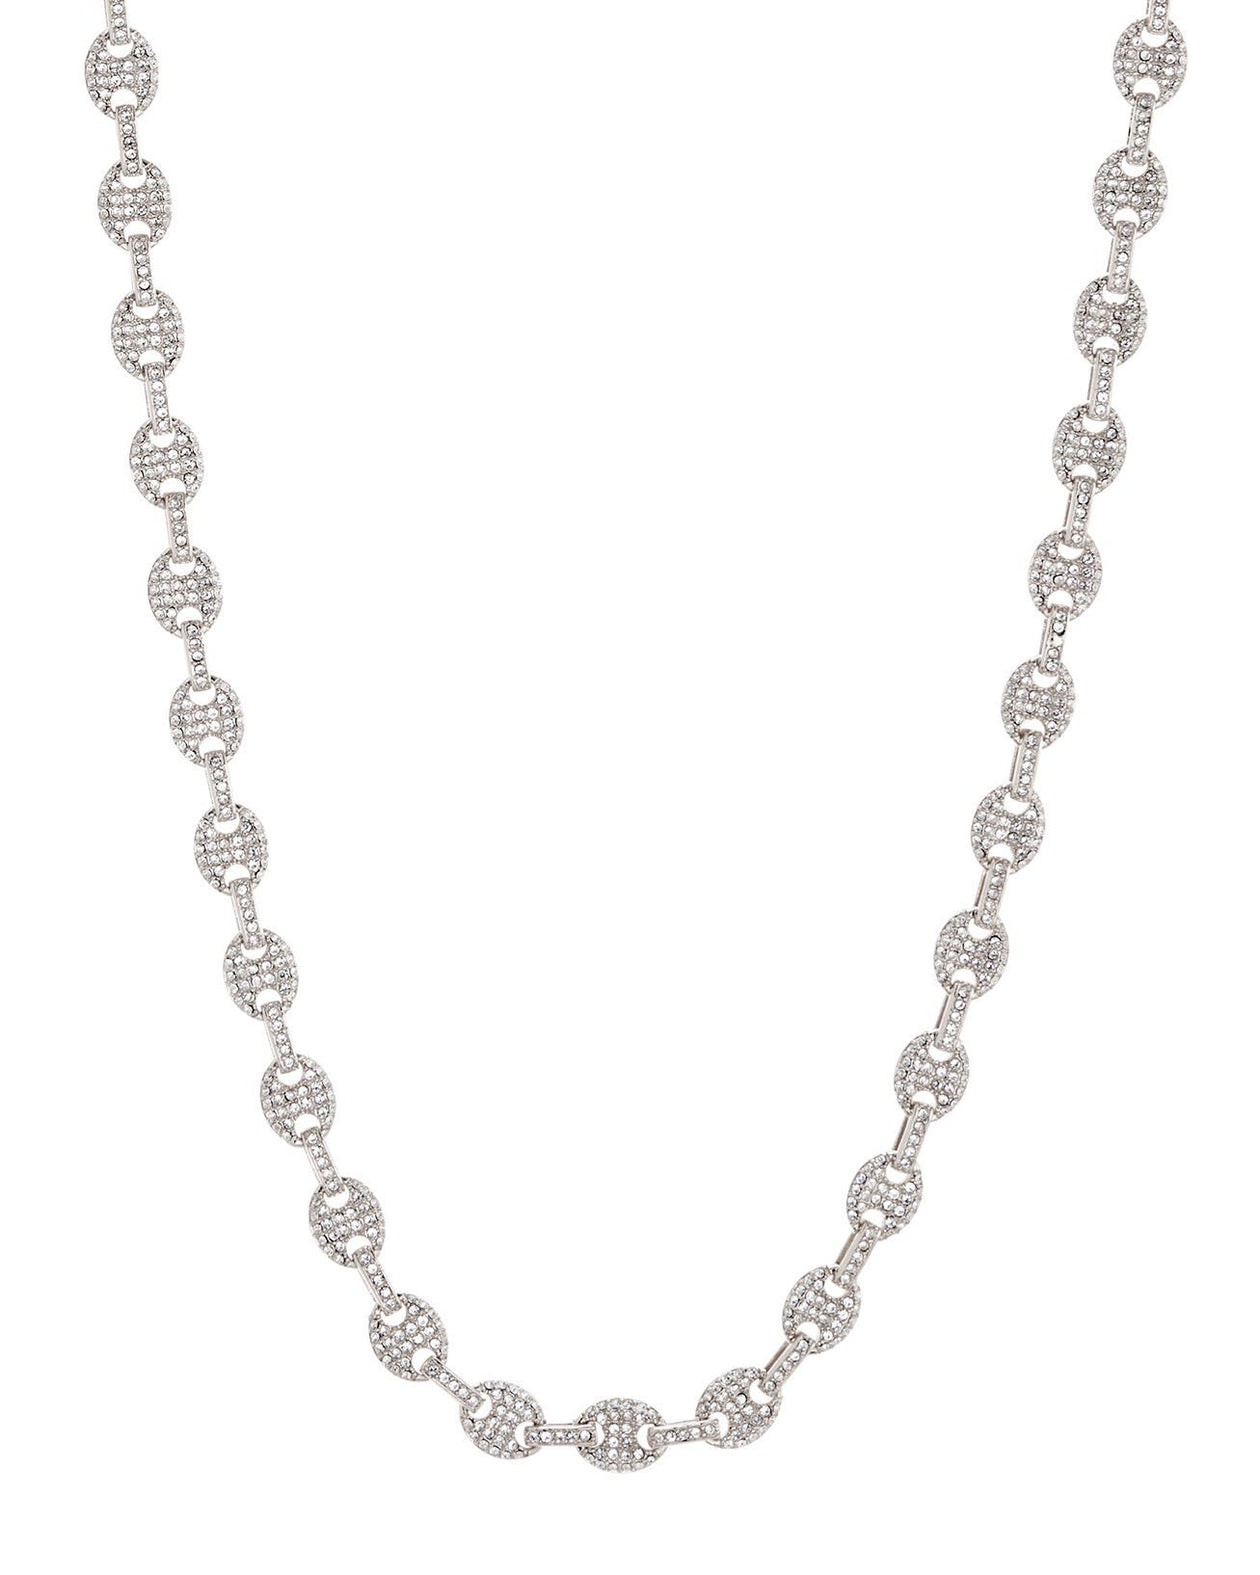 Pave Mariner Chain Necklace - Silver | Luv Aj - Holiday 2020